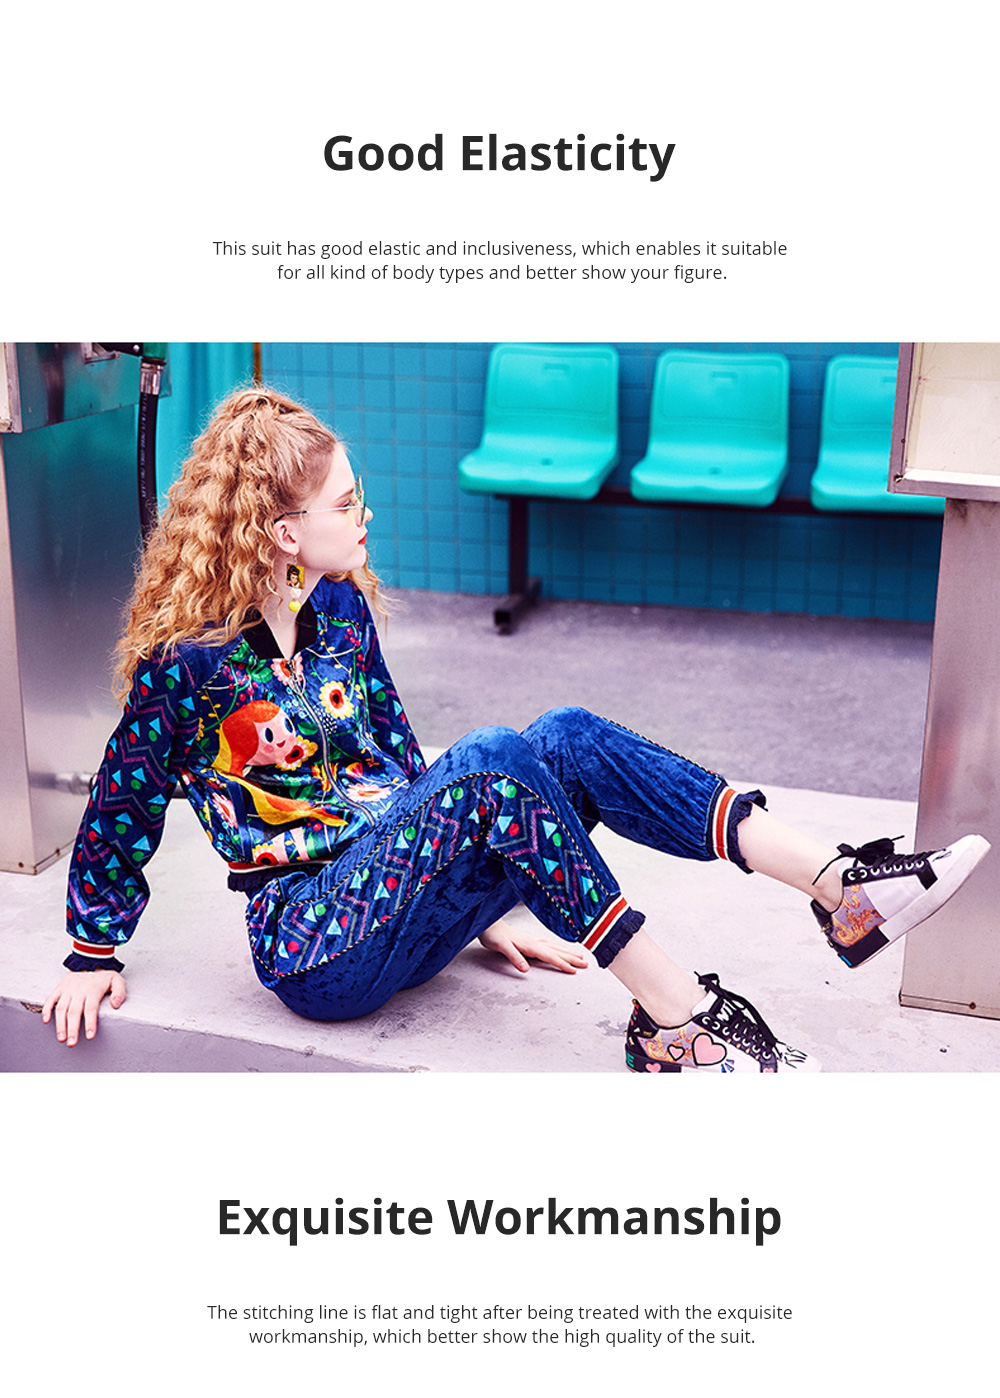 2020 Women's Velour Tracksuit Set with Long Sleeve Top Long Pants 2 Piece Sporty Velvet Suits with Printed Flowers 4